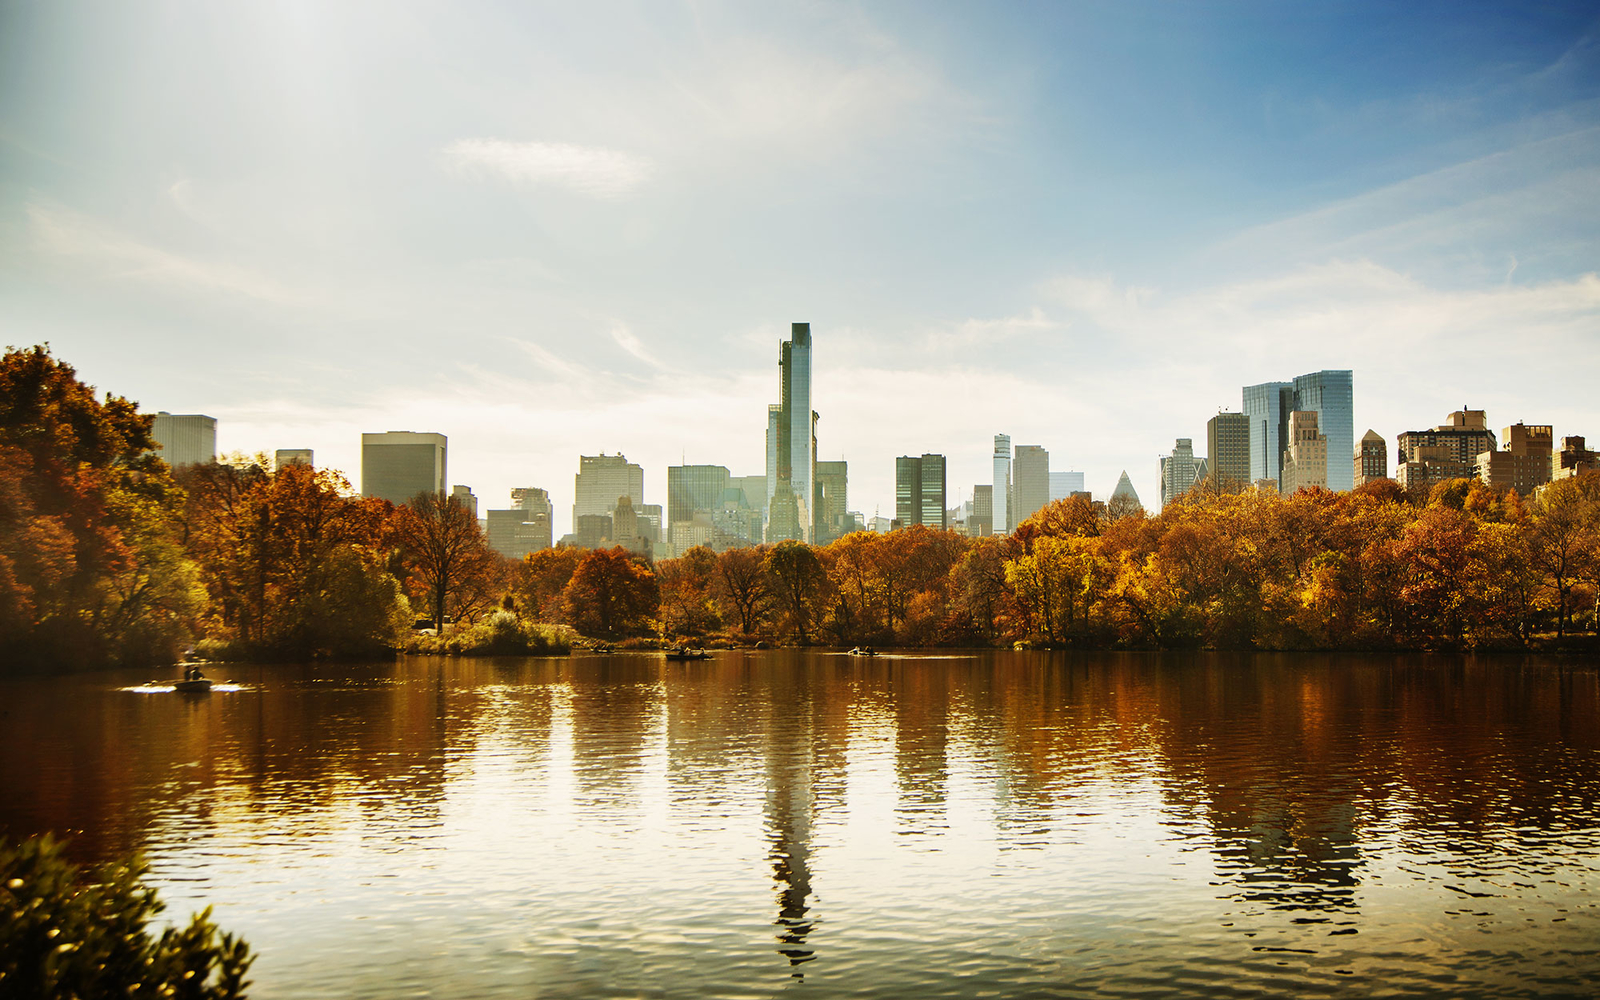 Central Park in the fall with skyscrapers